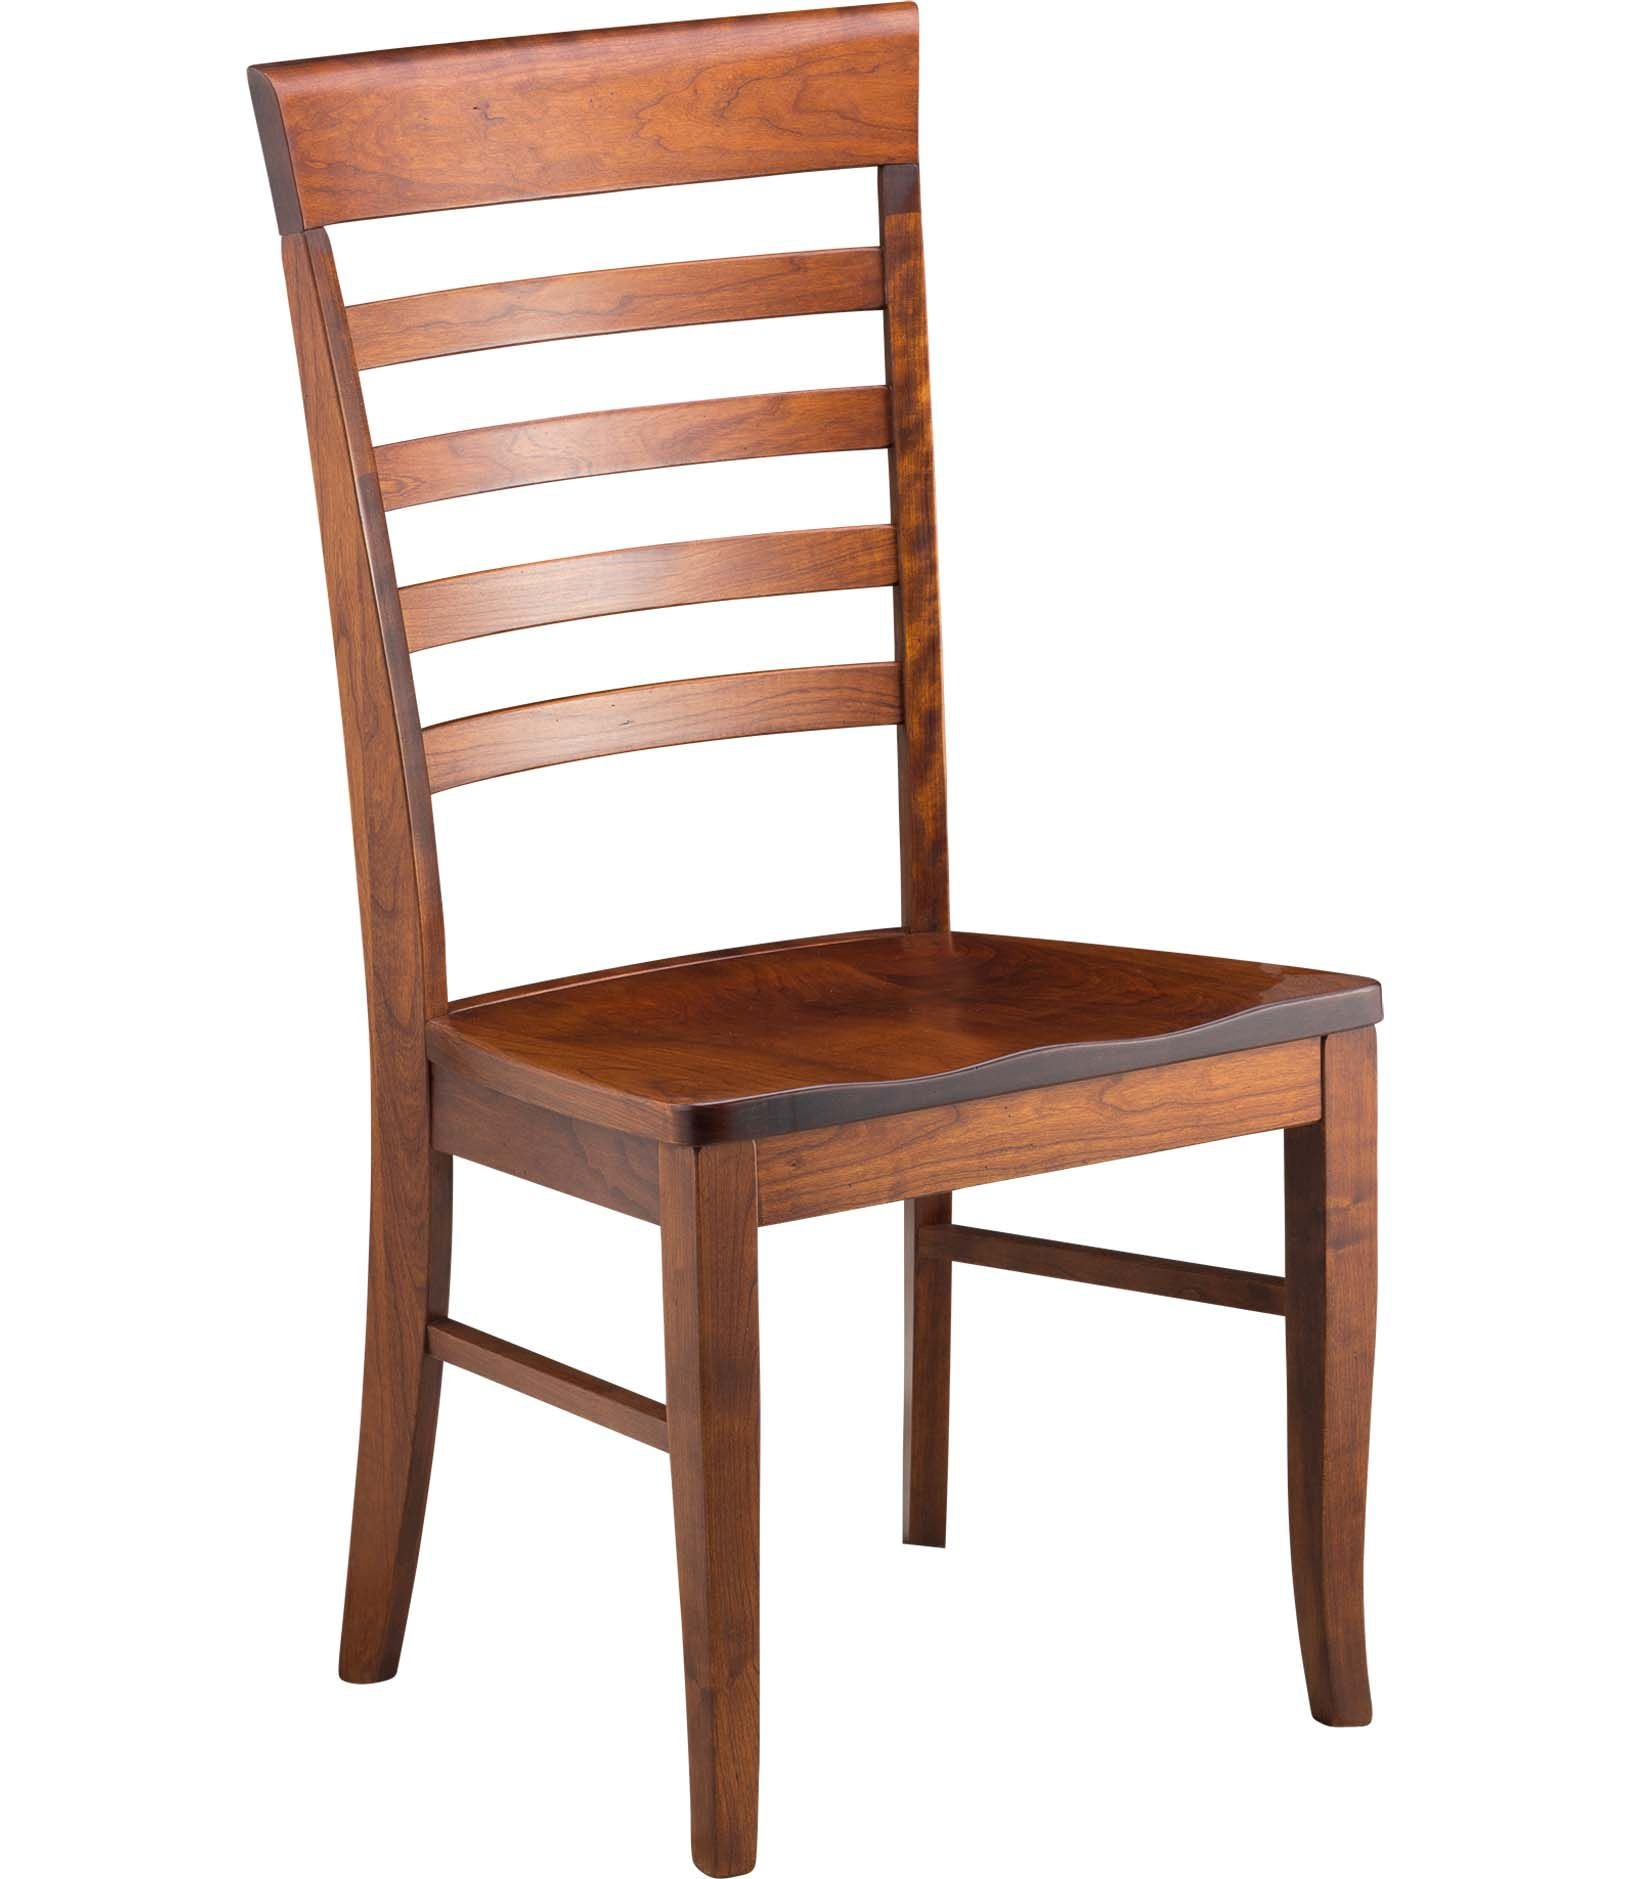 Gat Creek Burbank Side Chair With Wood Seat 81110